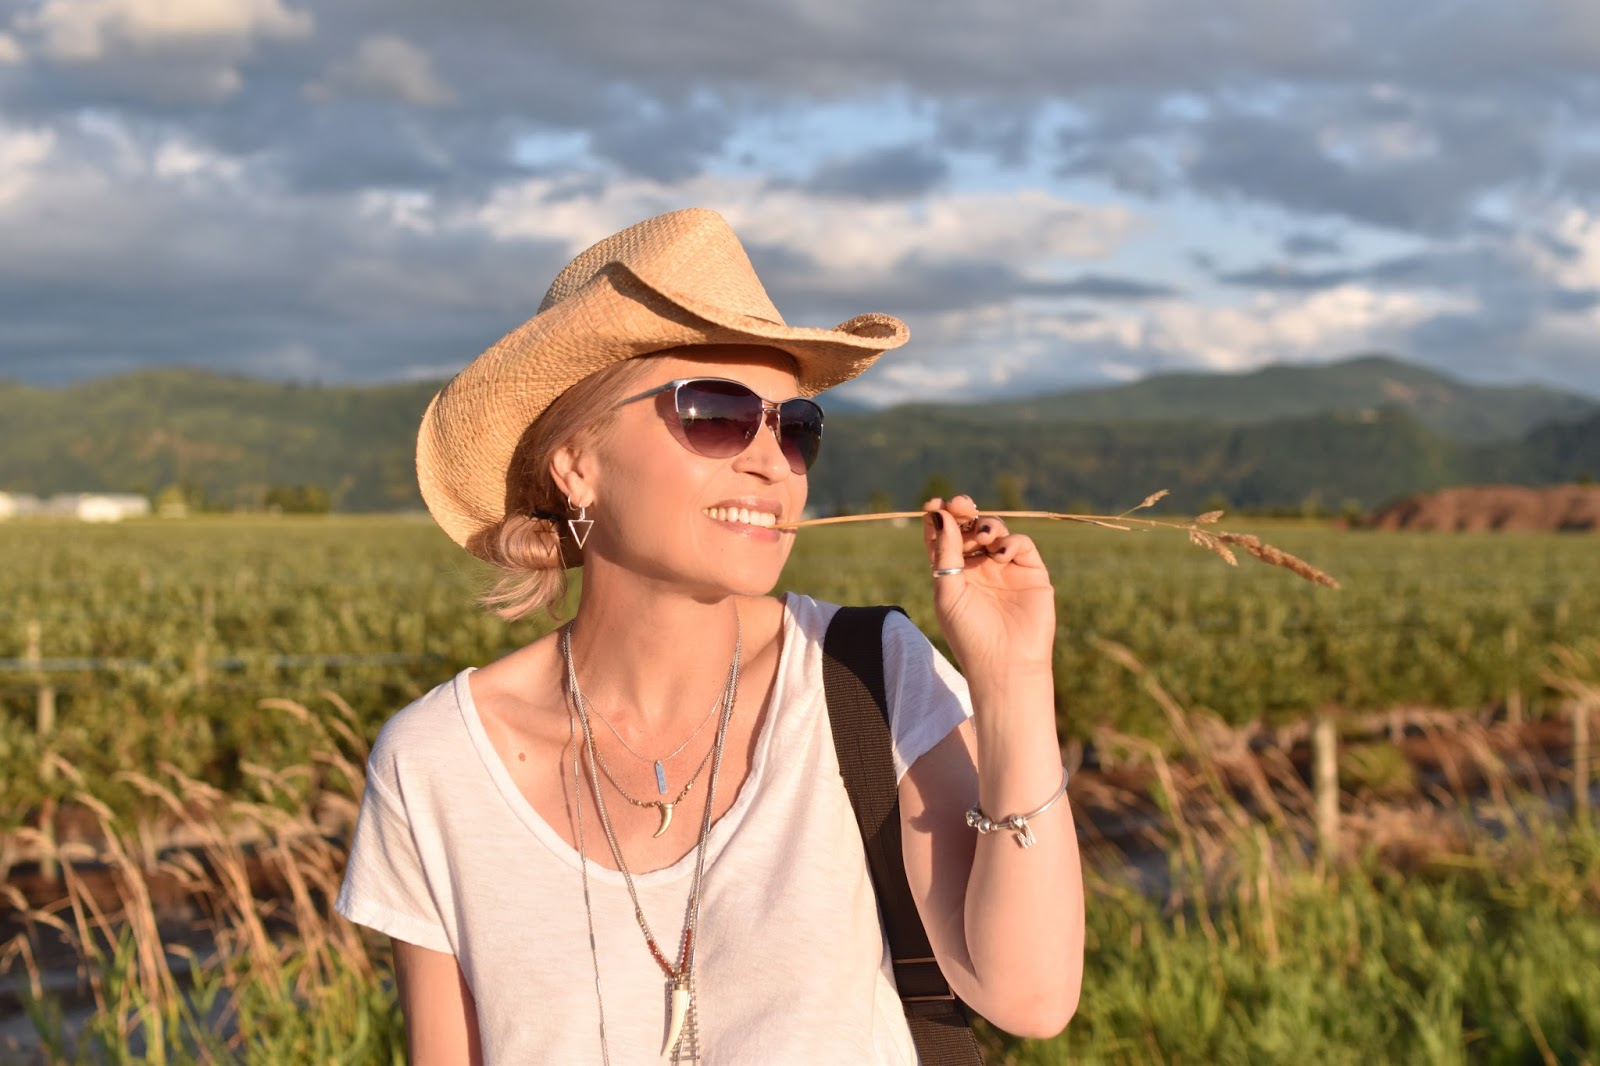 Monika Faulkner outfit inspiration - slouchy white tee, cowboy hat, wire-frame sunglasses